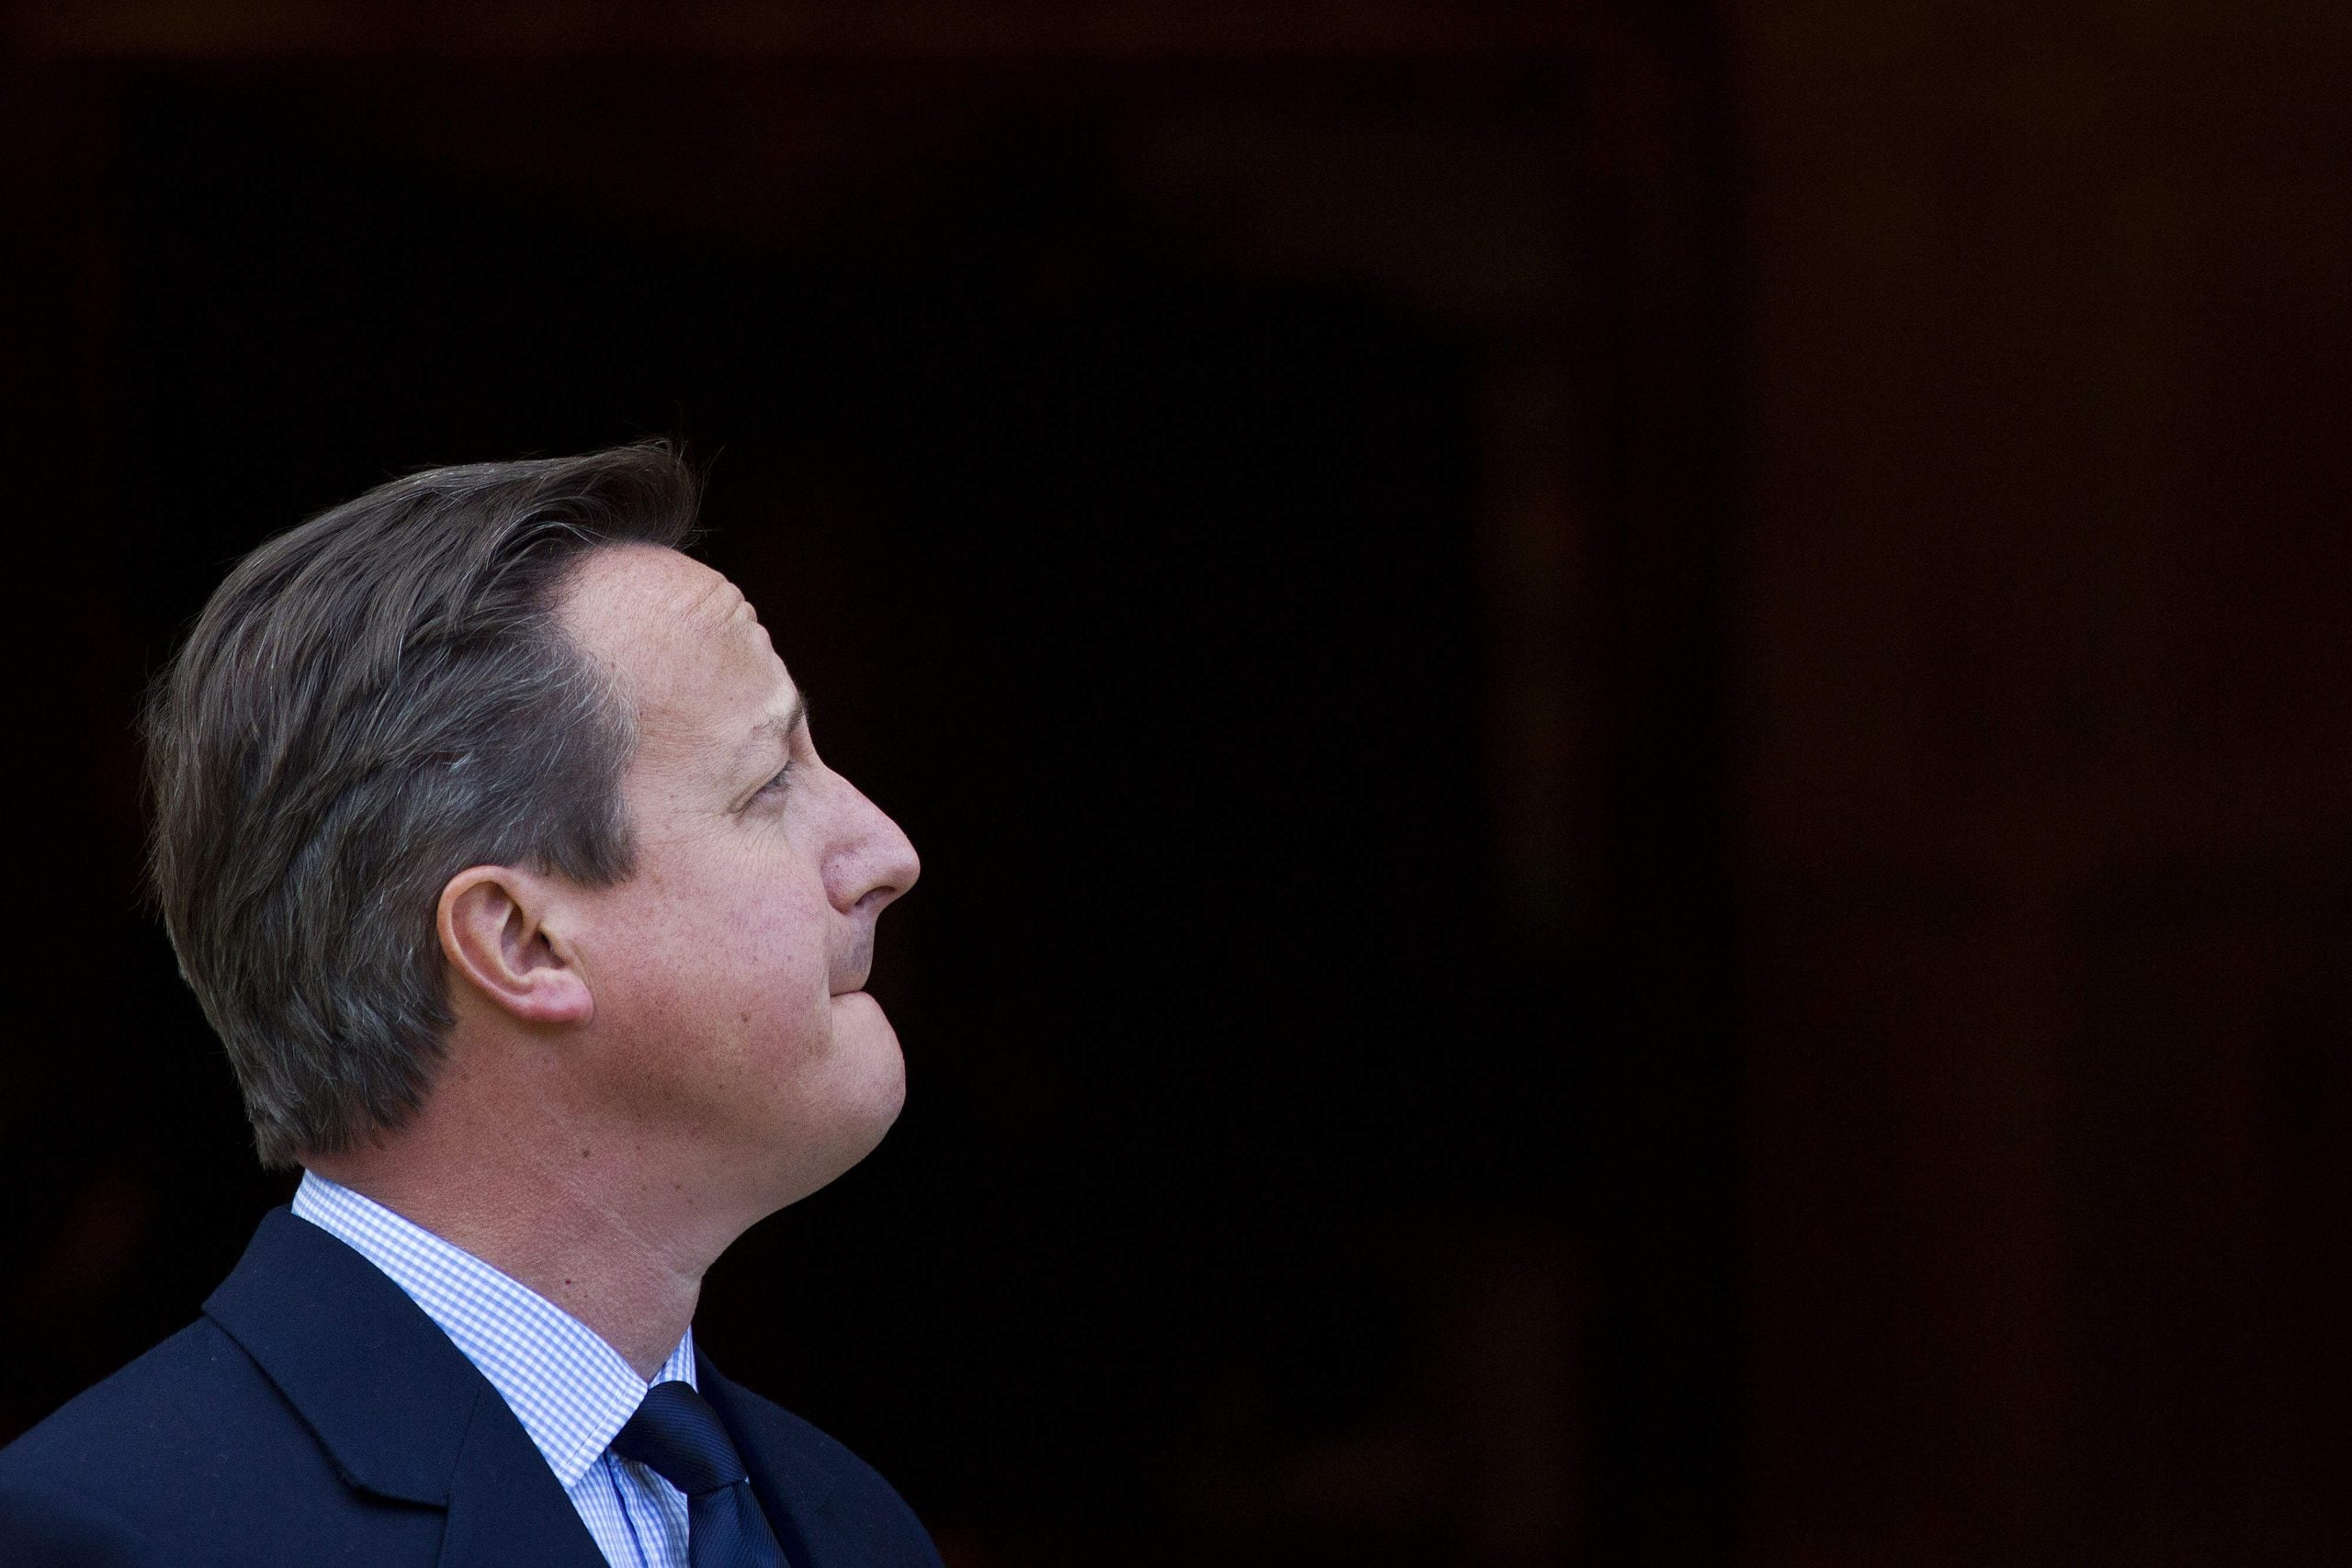 What does David Cameron have against young people?